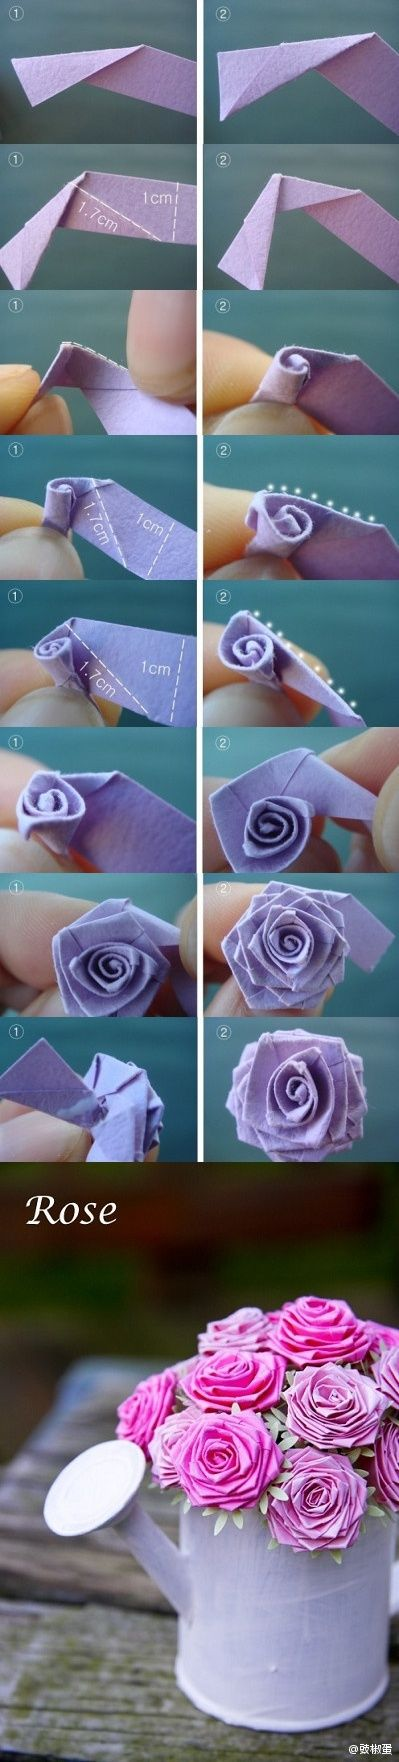 Paper Flowers | Crafts Tutorials Blog - Ideas For Crafts